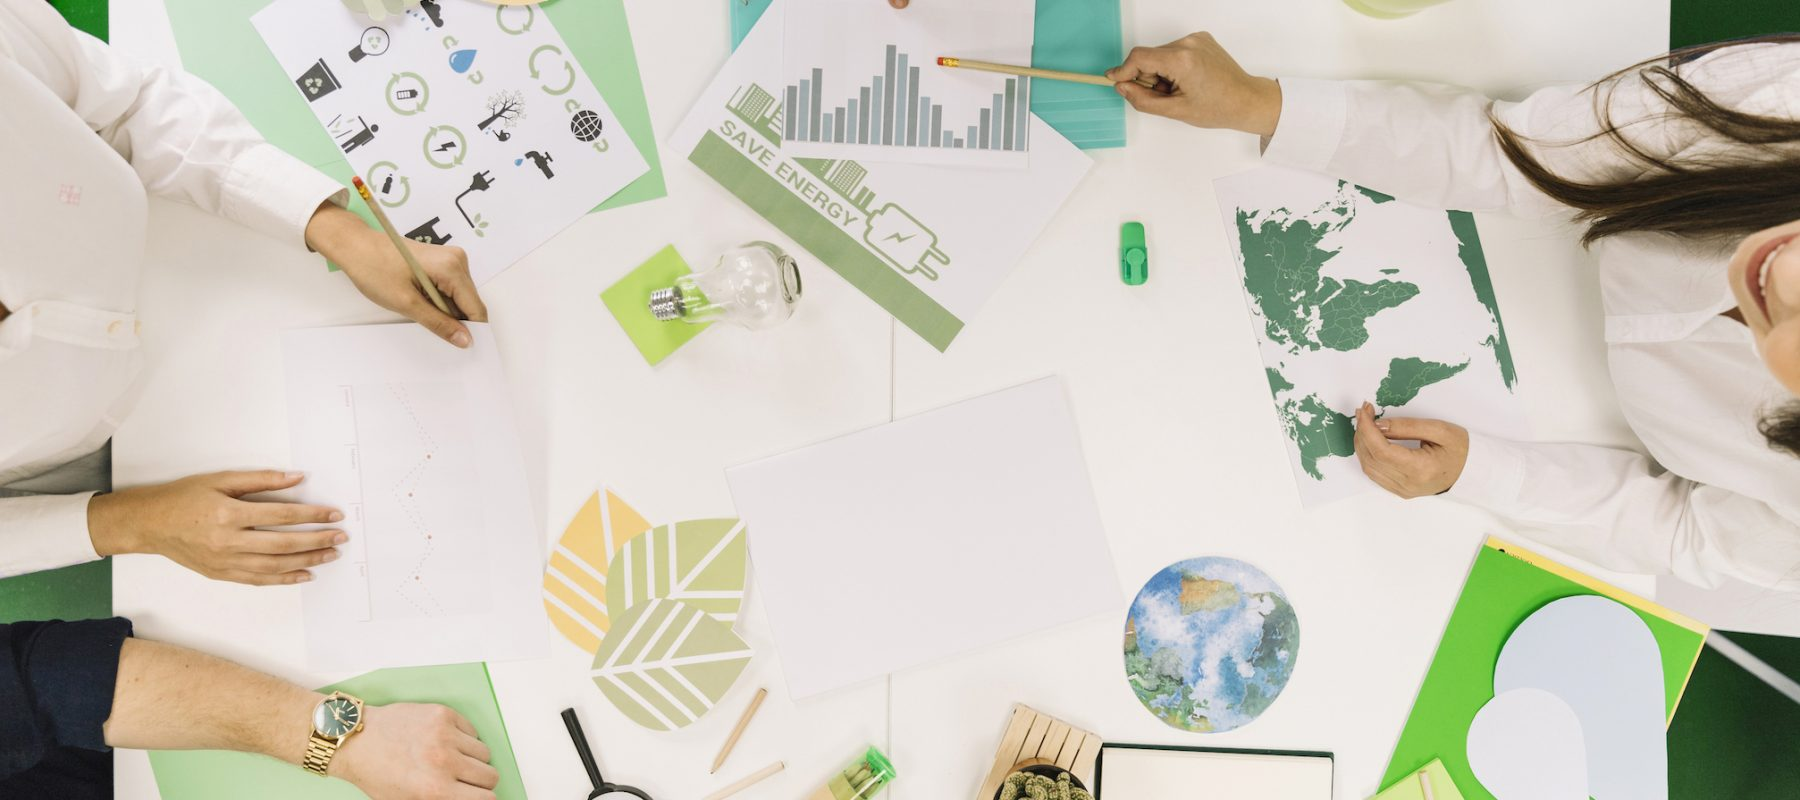 businesspeople-working-on-graph-with-various-natural-resources-icon-on-desk